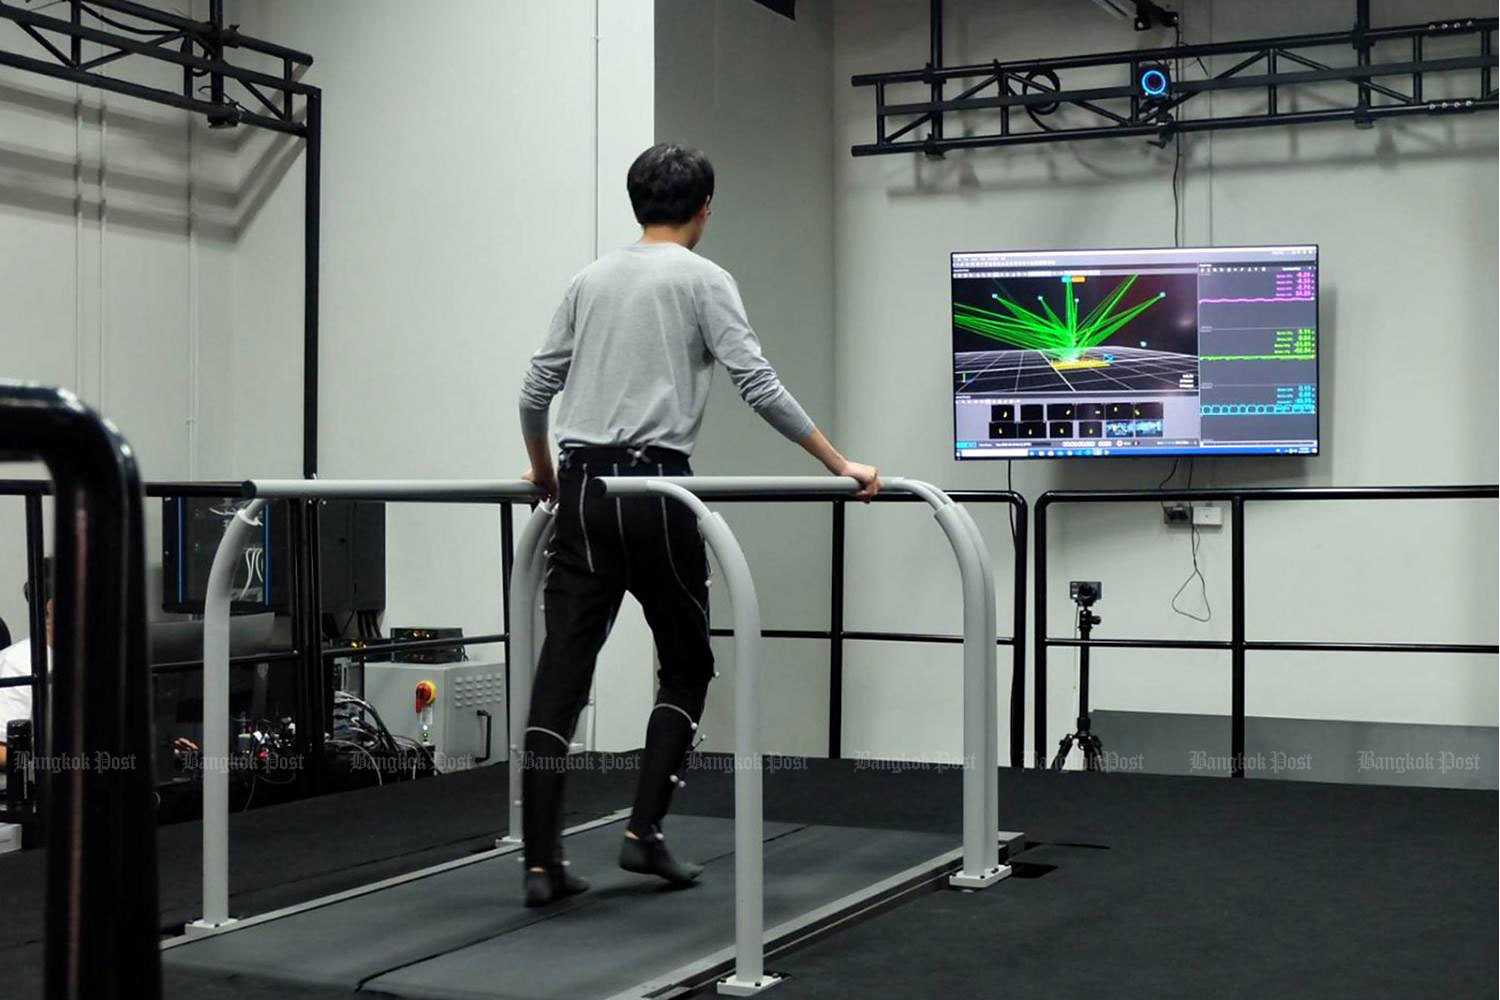 A student walks on a rehabilitation treadmill during a school presentation at the School of Information Science and Technology at Vistec in Rayong on Aug 24. (Photo and video by Thana Boonlert)